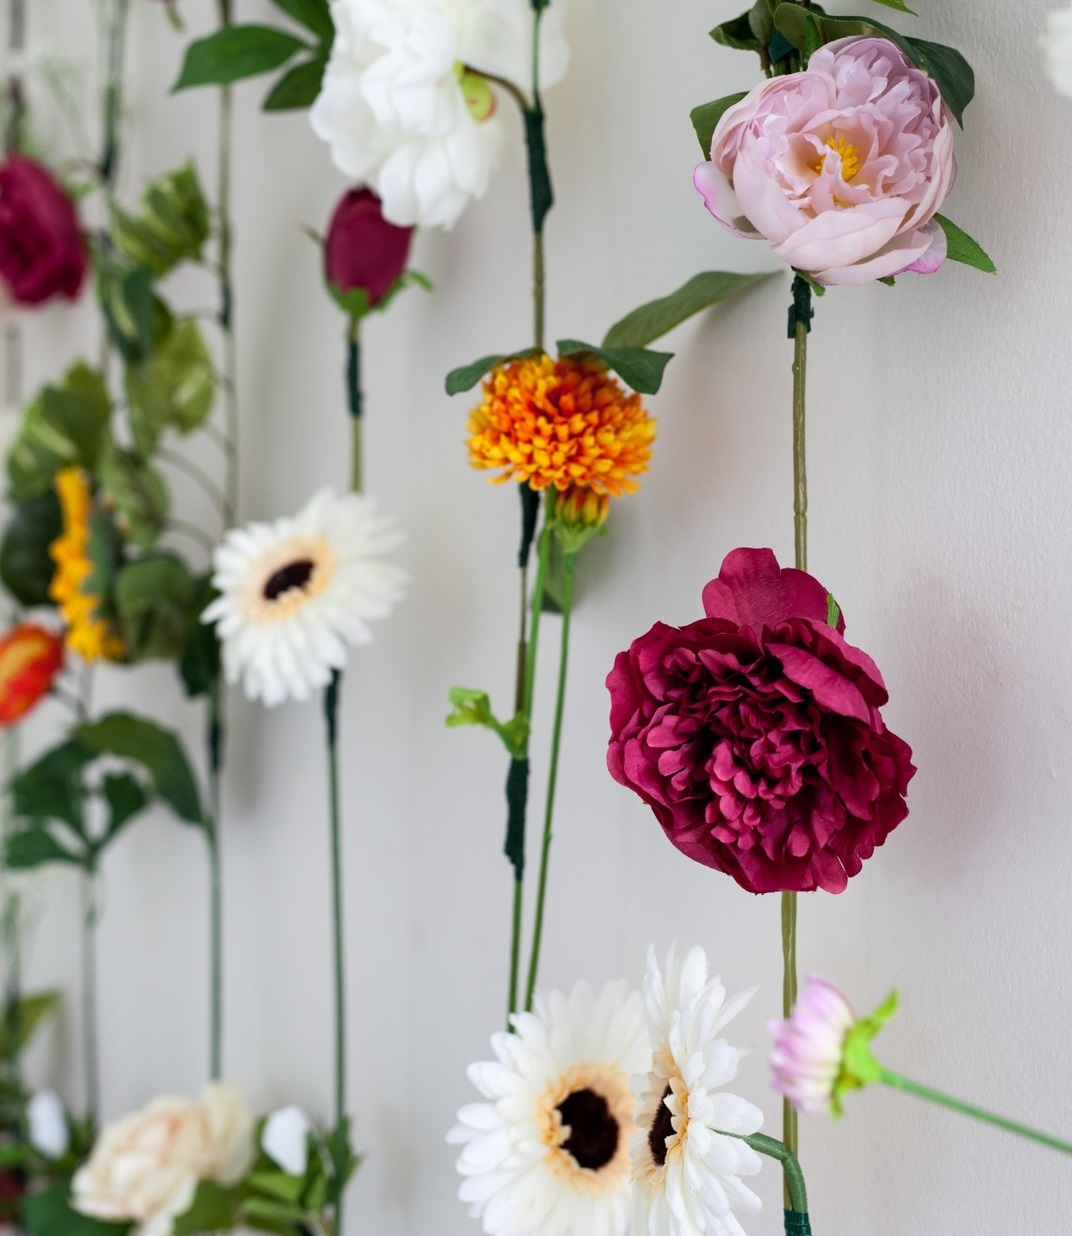 DIY Flower Dangles That Are Super Pretty